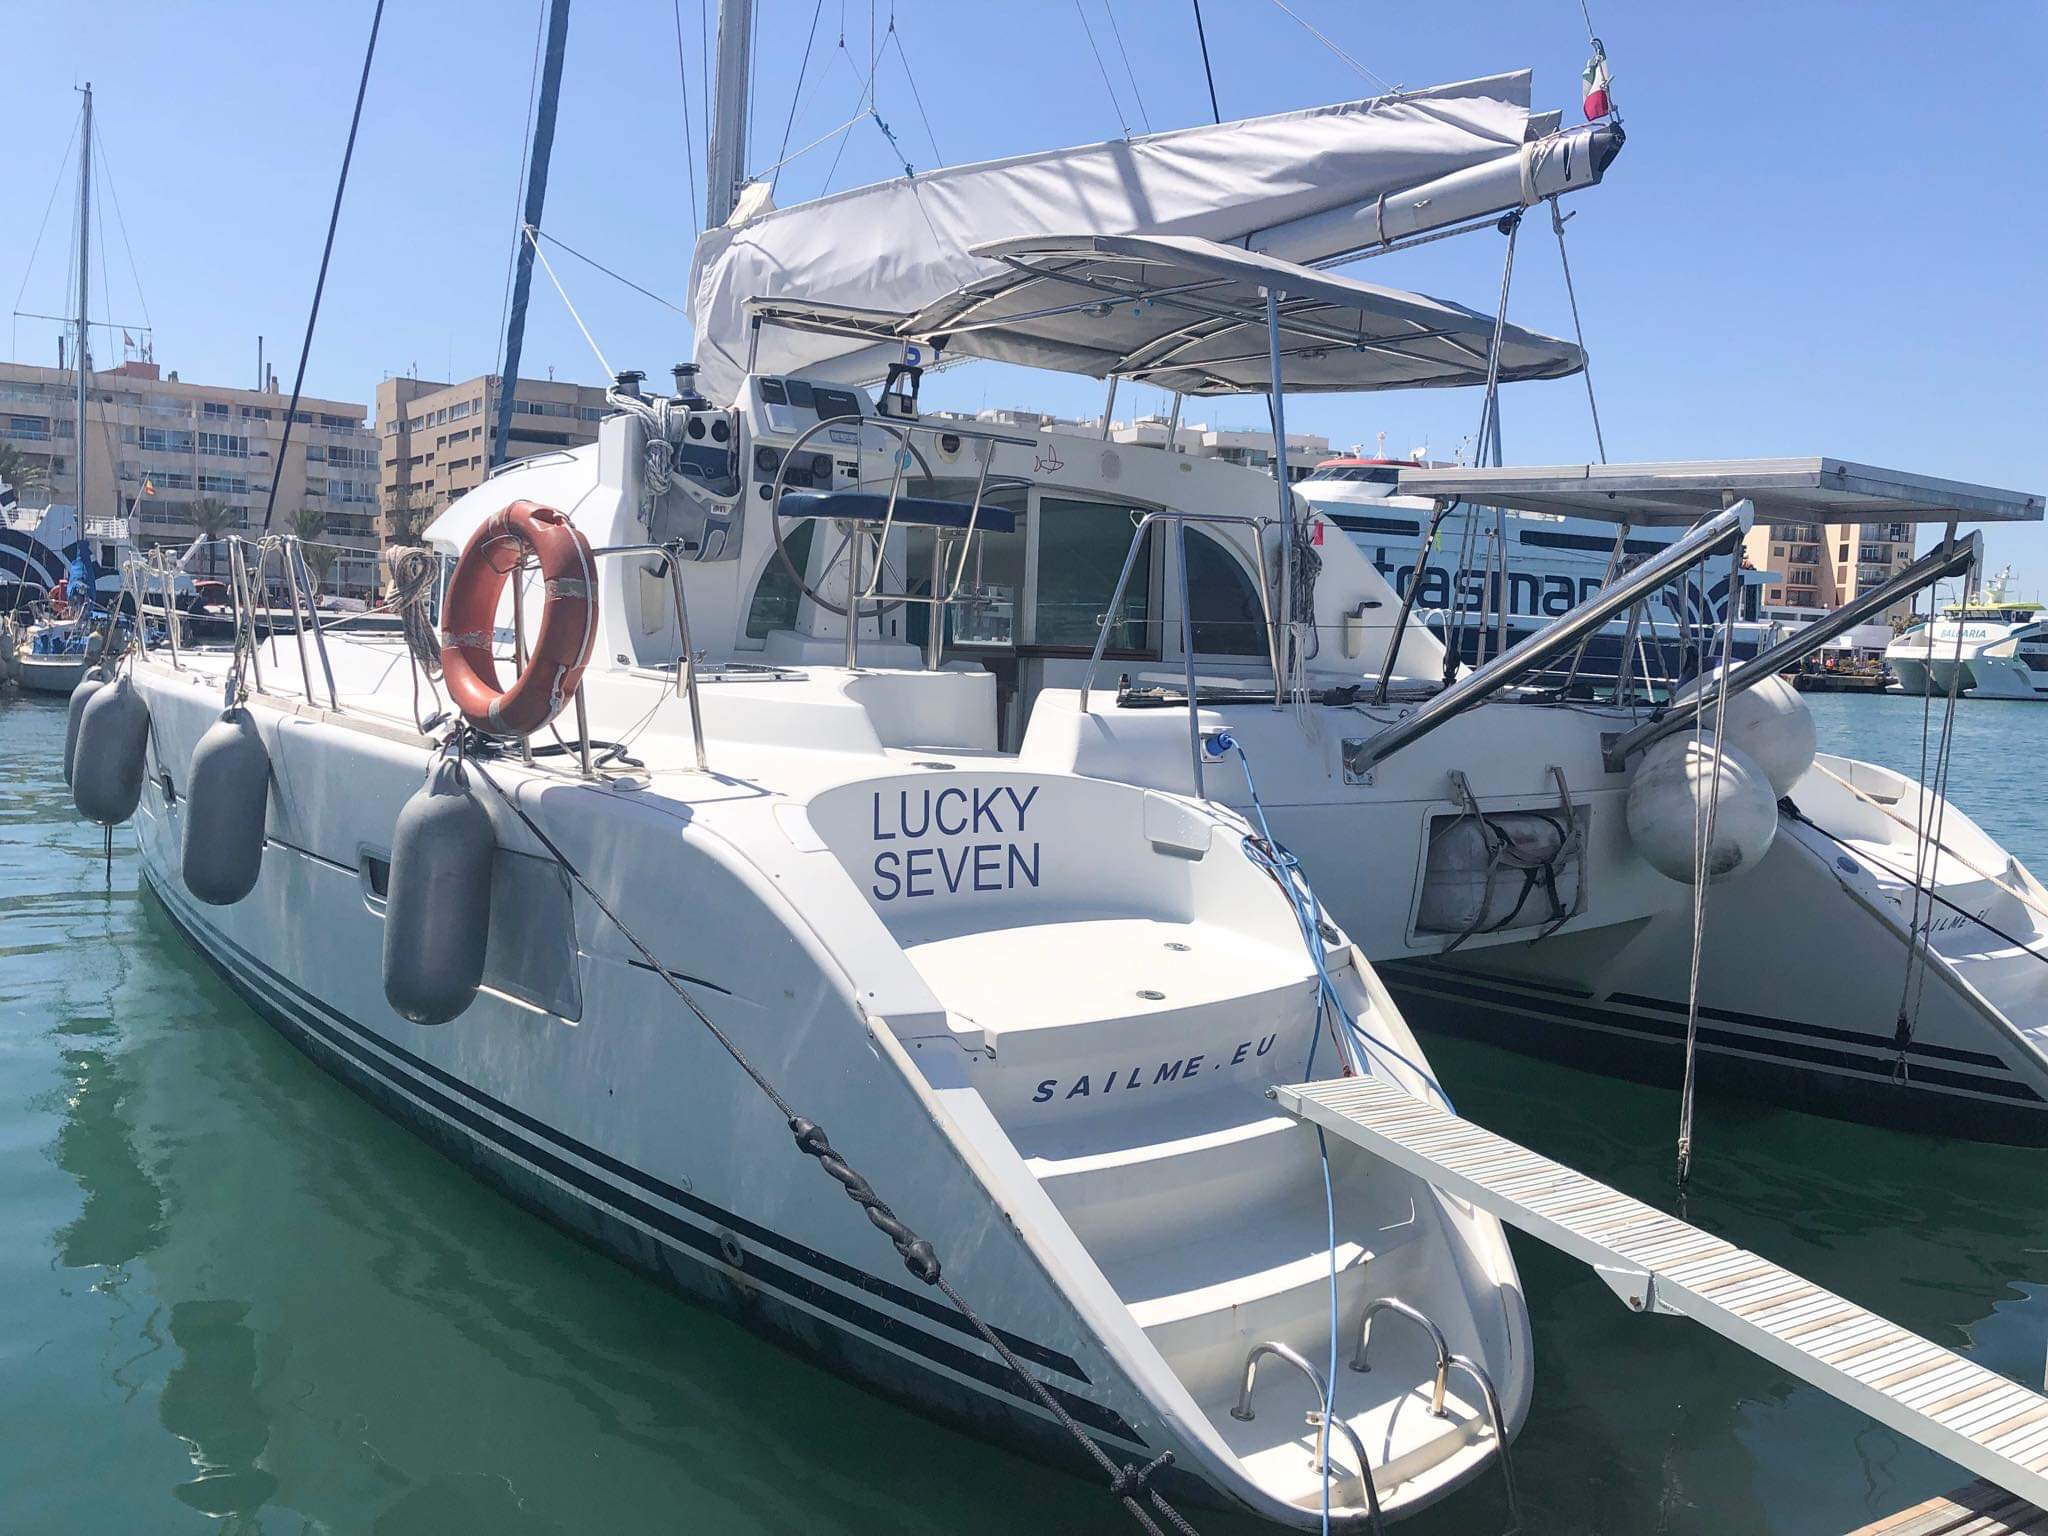 Lagoon 380 S2 (Lucky Seven (!!!from Monday, refit 2019)) Main image - 0